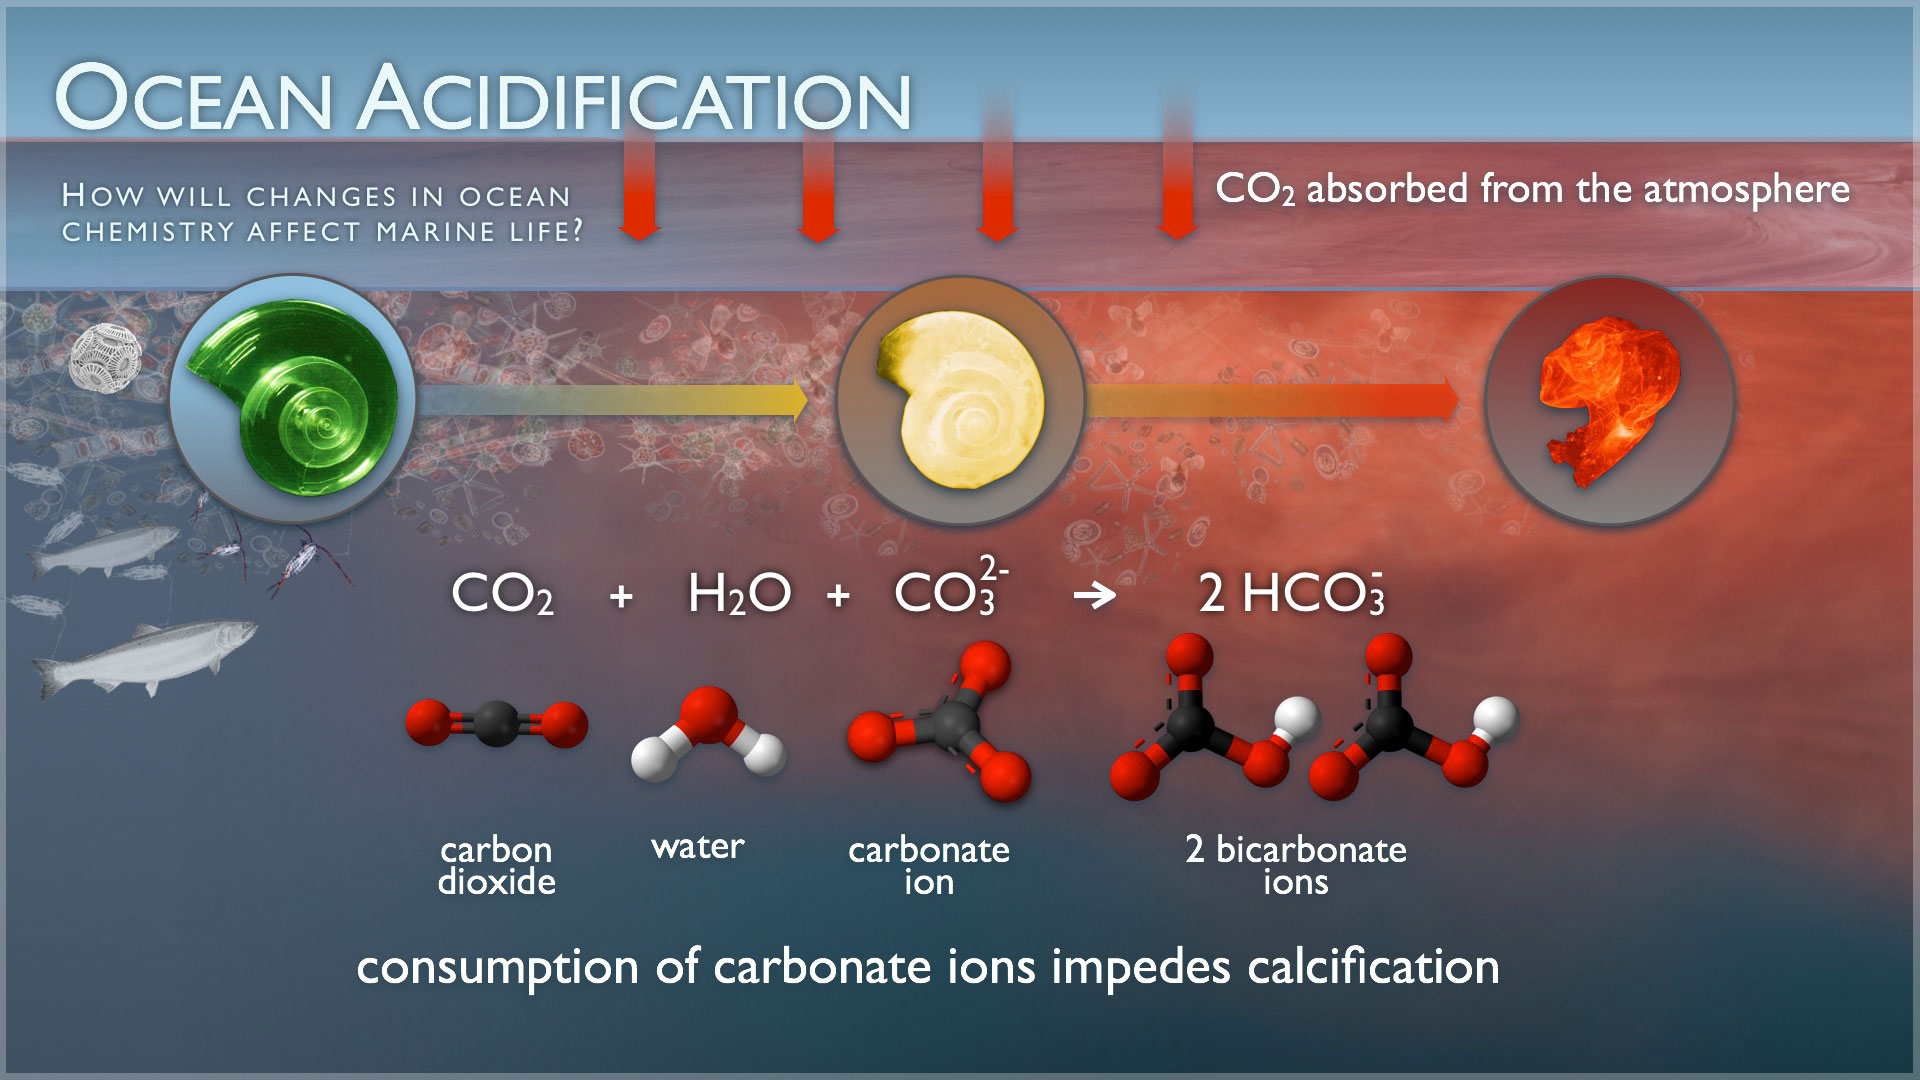 Source: NOAA - http://www.pmel.noaa.gov/co2/story/Ocean+Acidification